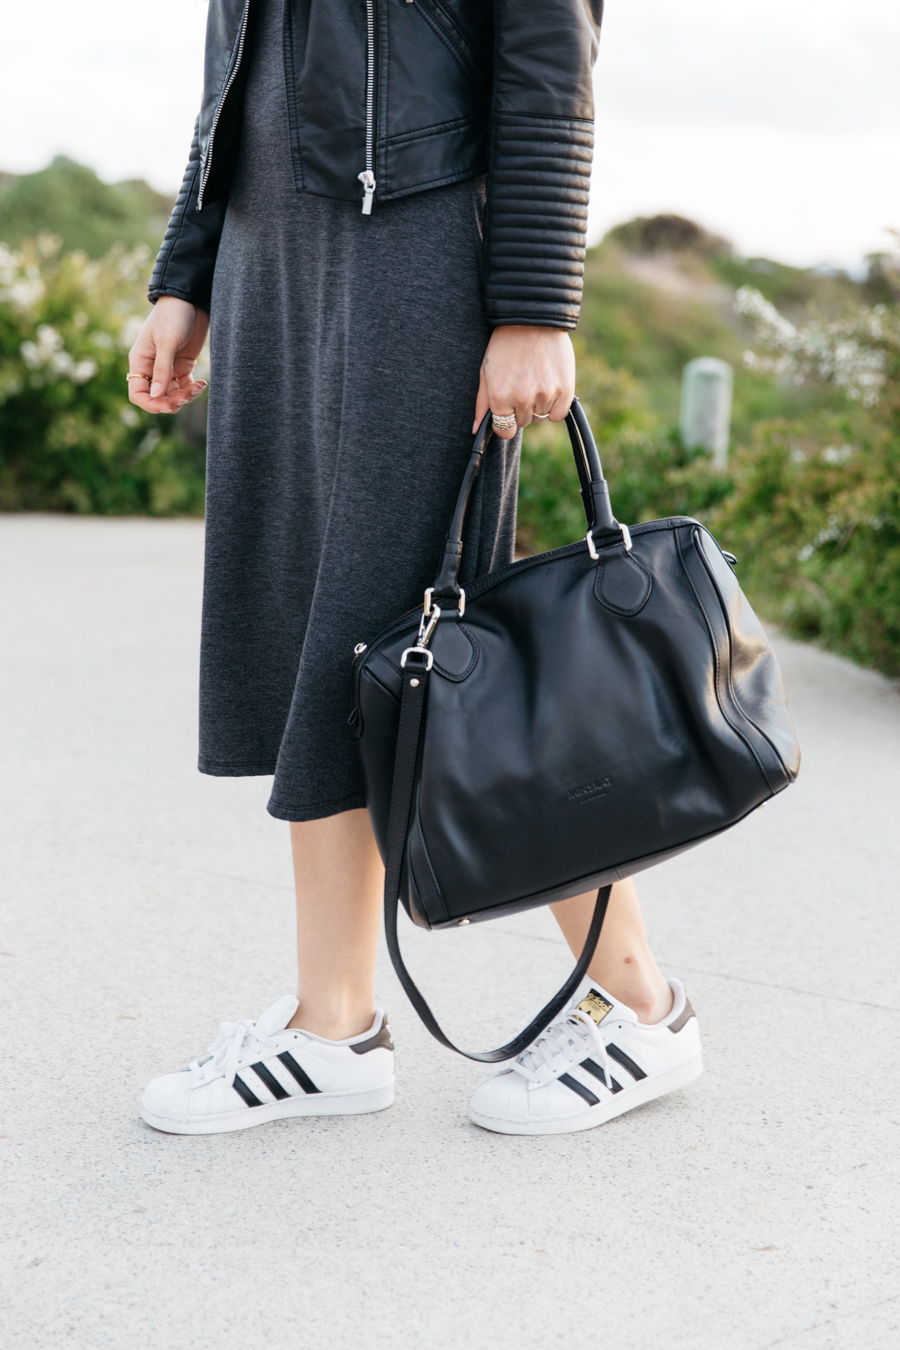 Minskat Copenhagen Mira bag with Adidas Superstars.